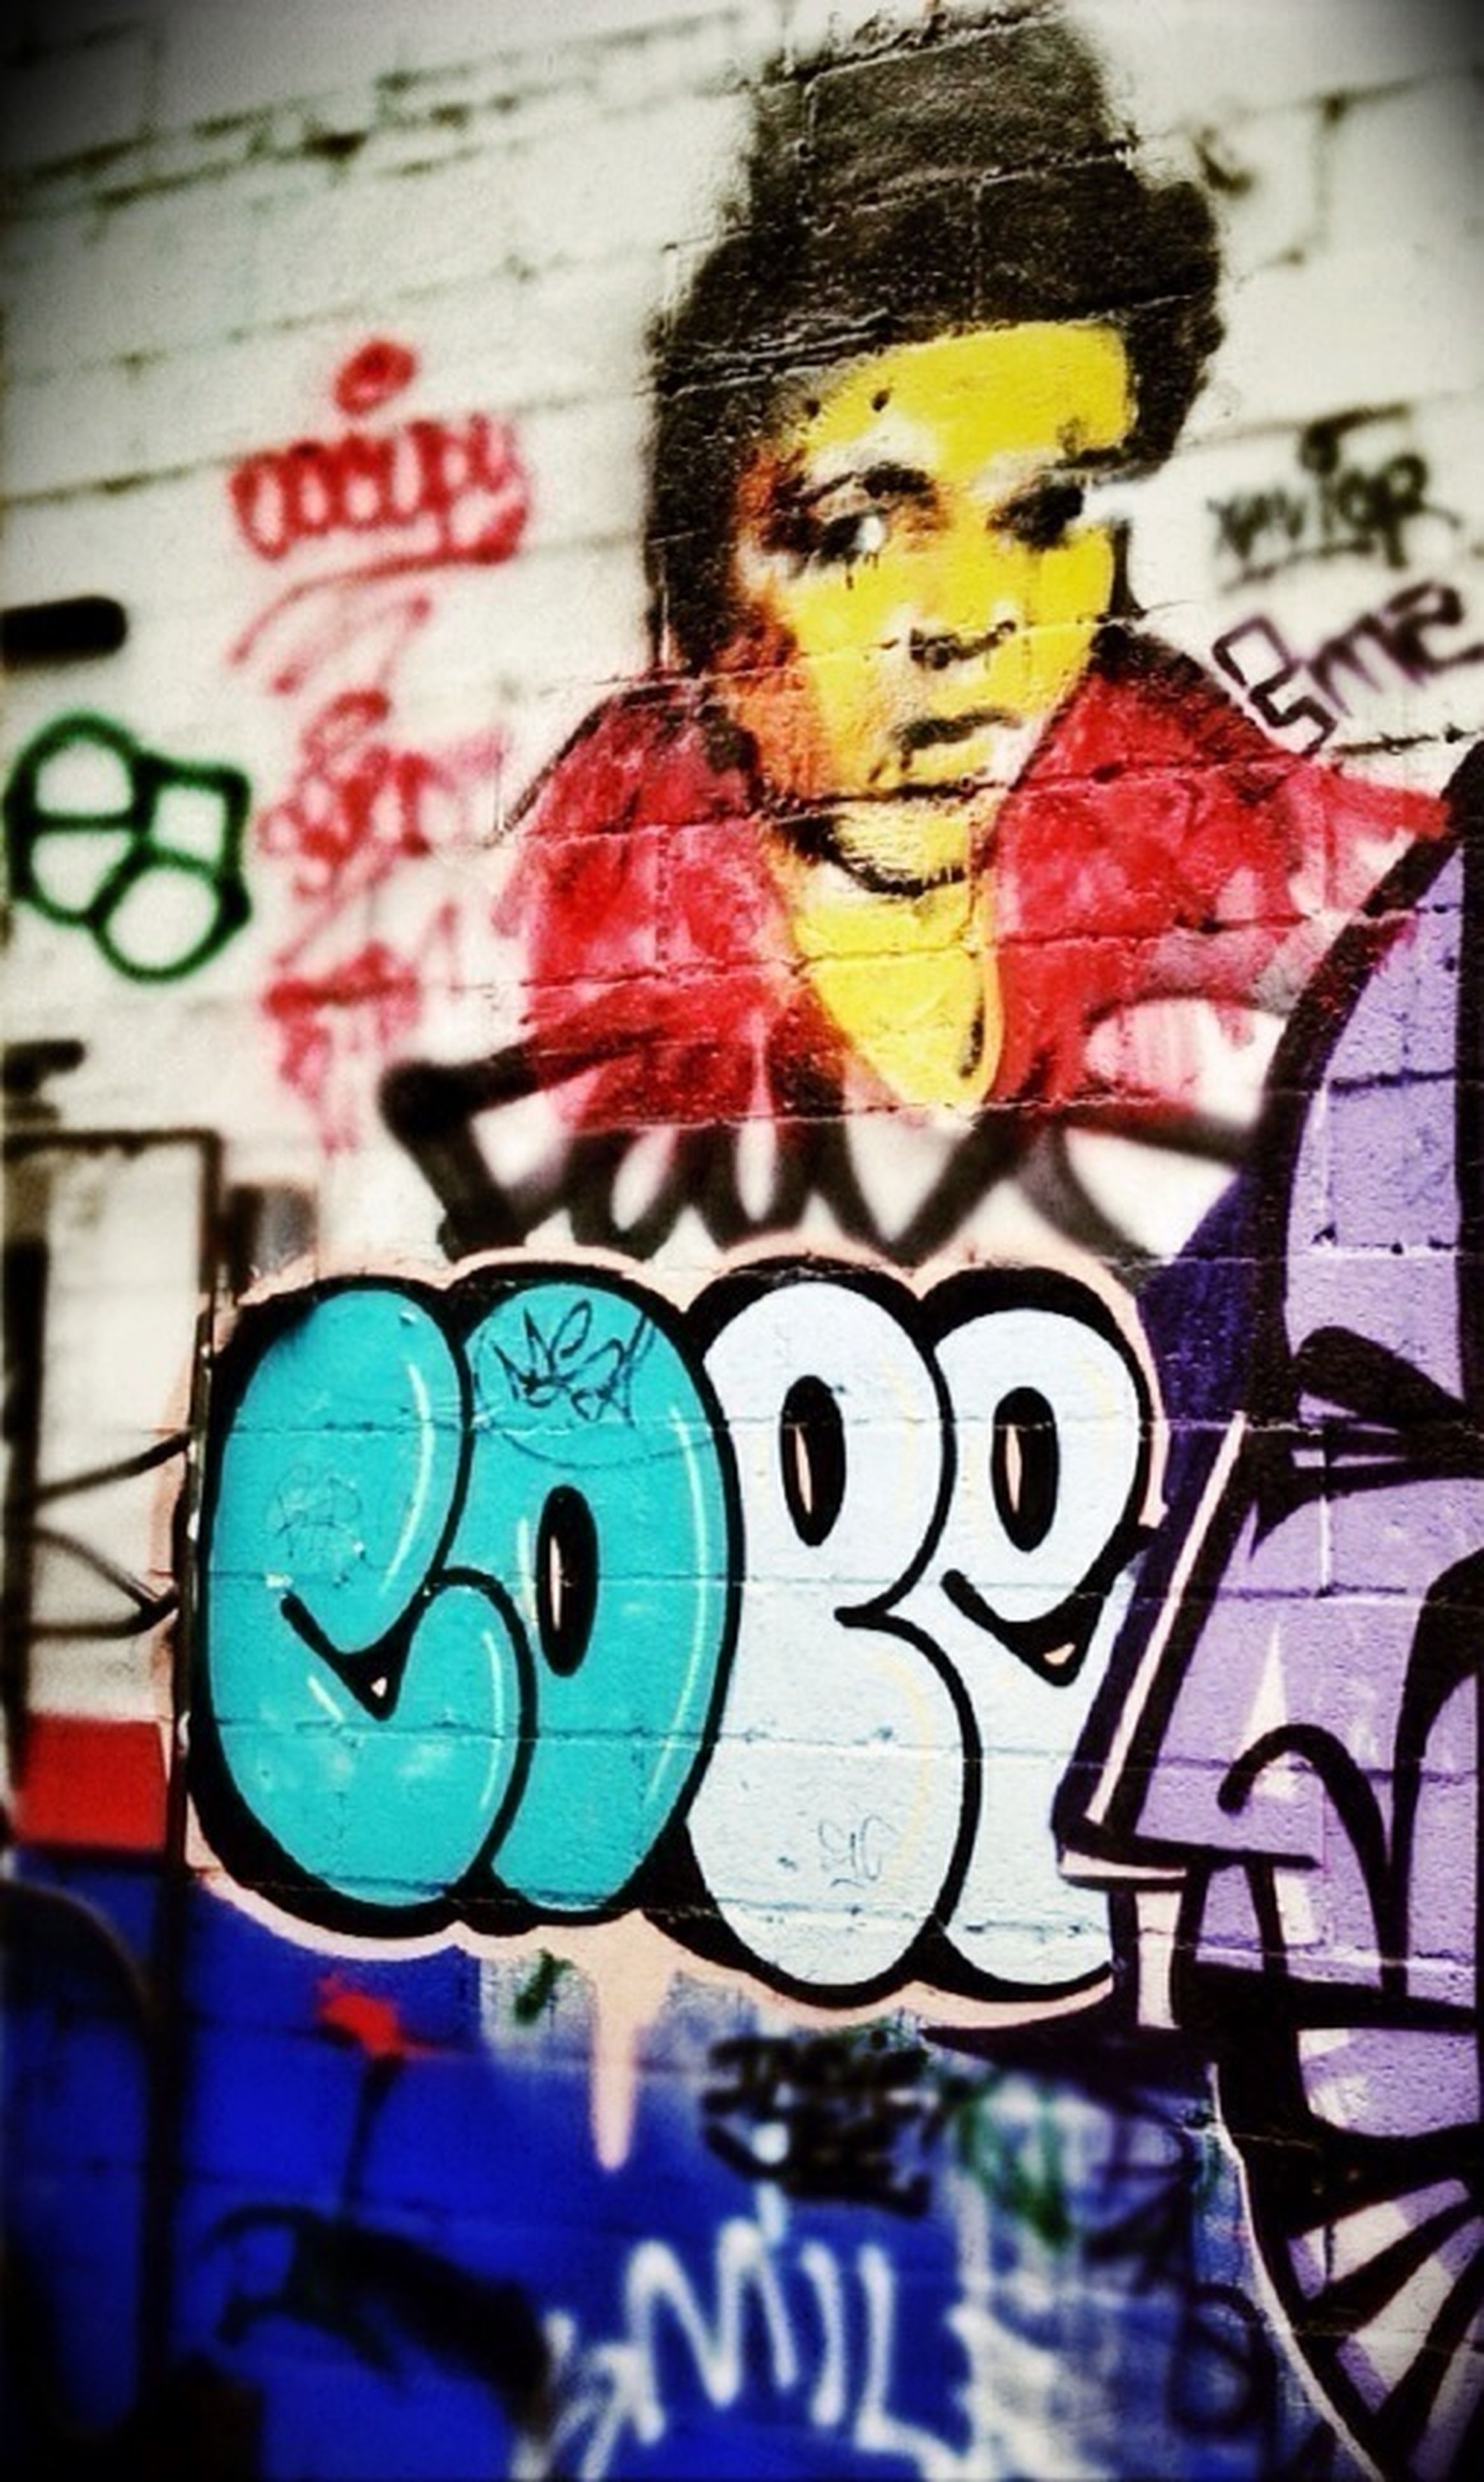 graffiti, art, creativity, art and craft, text, human representation, wall - building feature, communication, western script, indoors, close-up, multi colored, built structure, architecture, street art, wall, painting, day